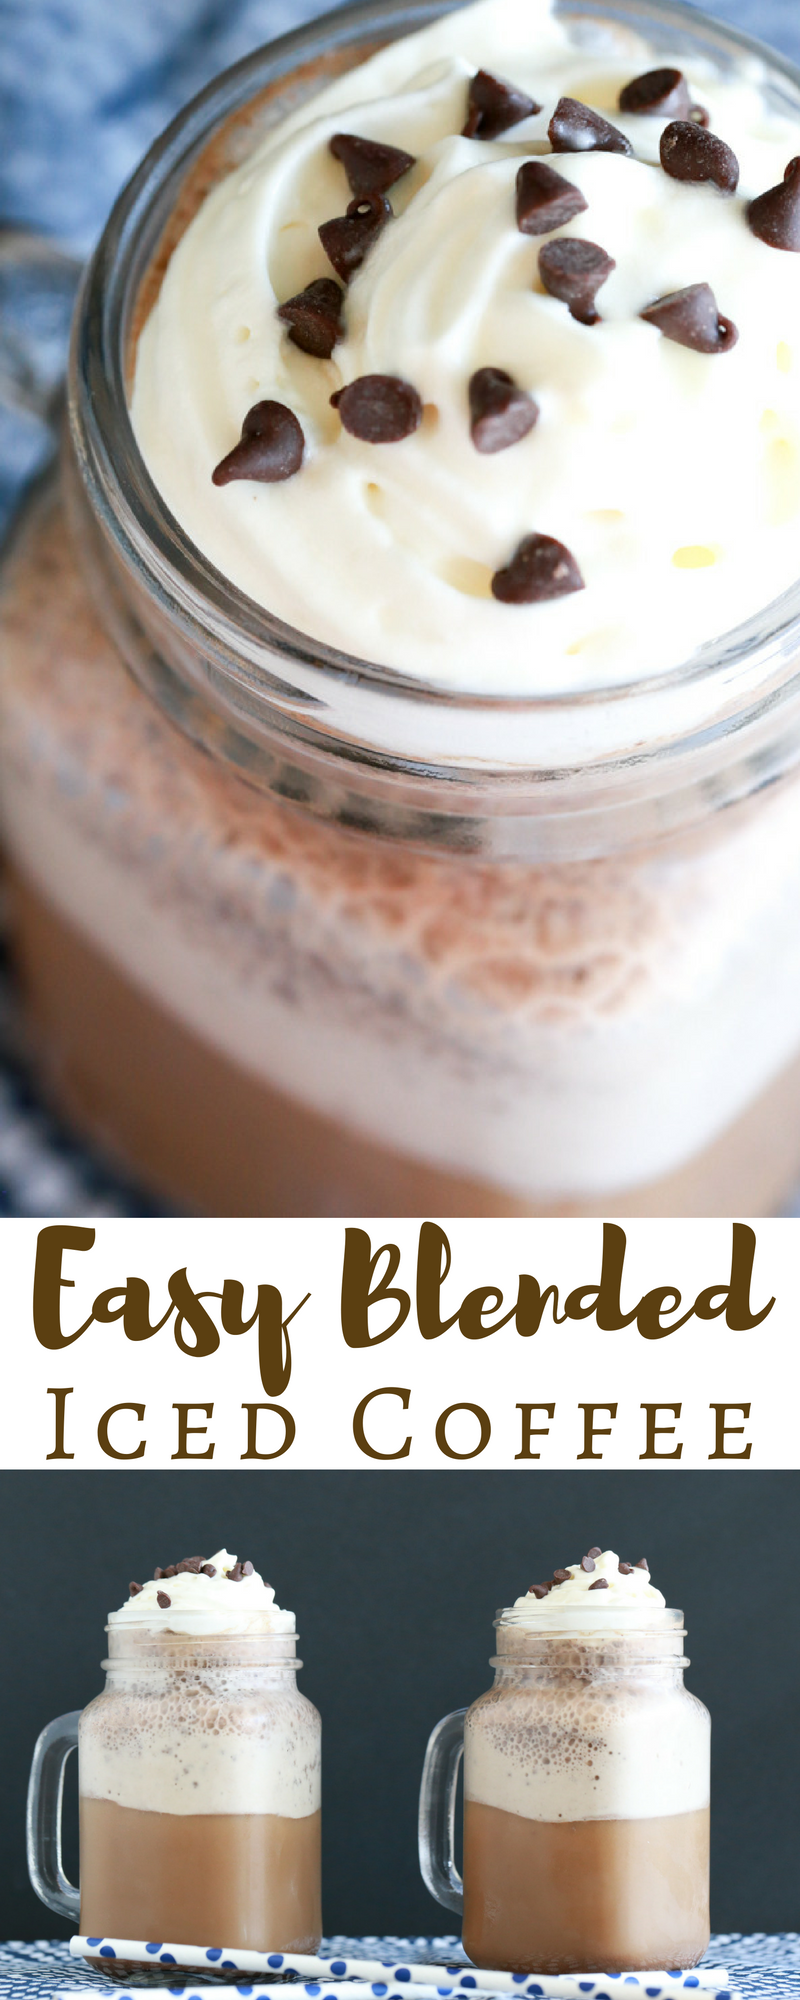 I don't care what the weather is like outside. I'm always game for this Easy Blended Iced Coffee recipe. So easy to make and so delicious.